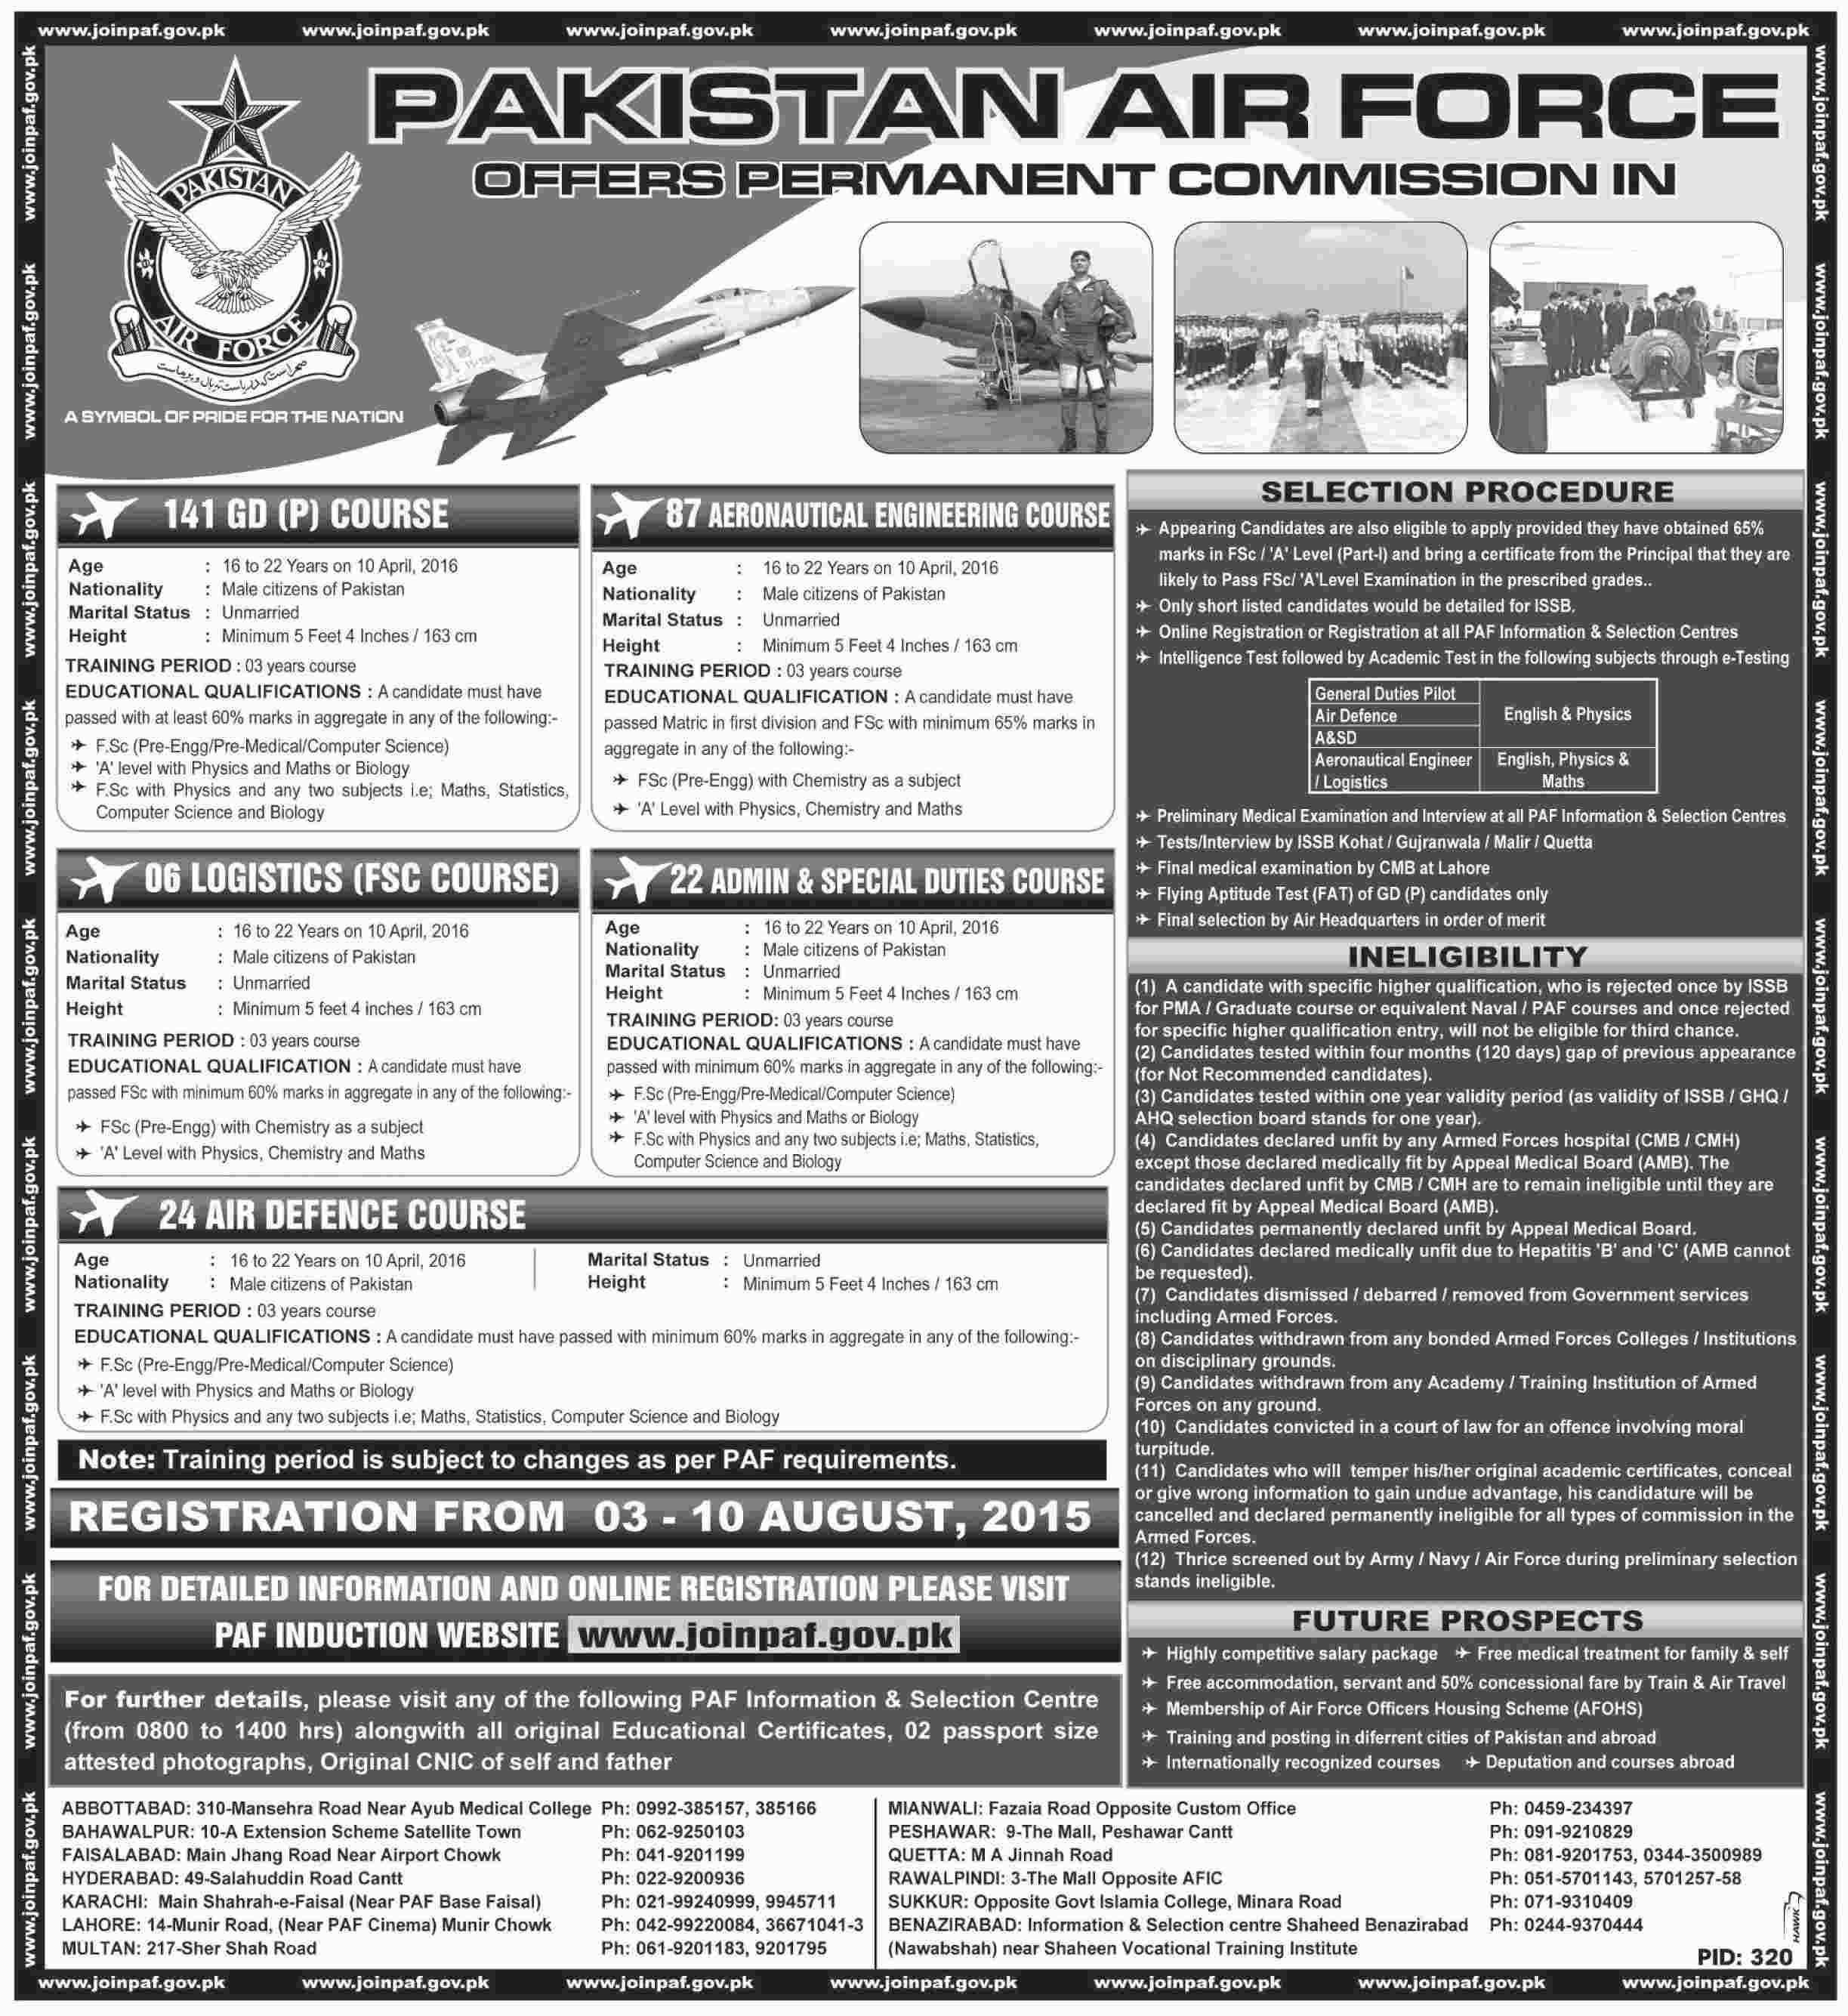 Pakistan Air Force Jobs 2015 Join PAF As 141 GDP, 87 CAE, 24 AD Online Registration